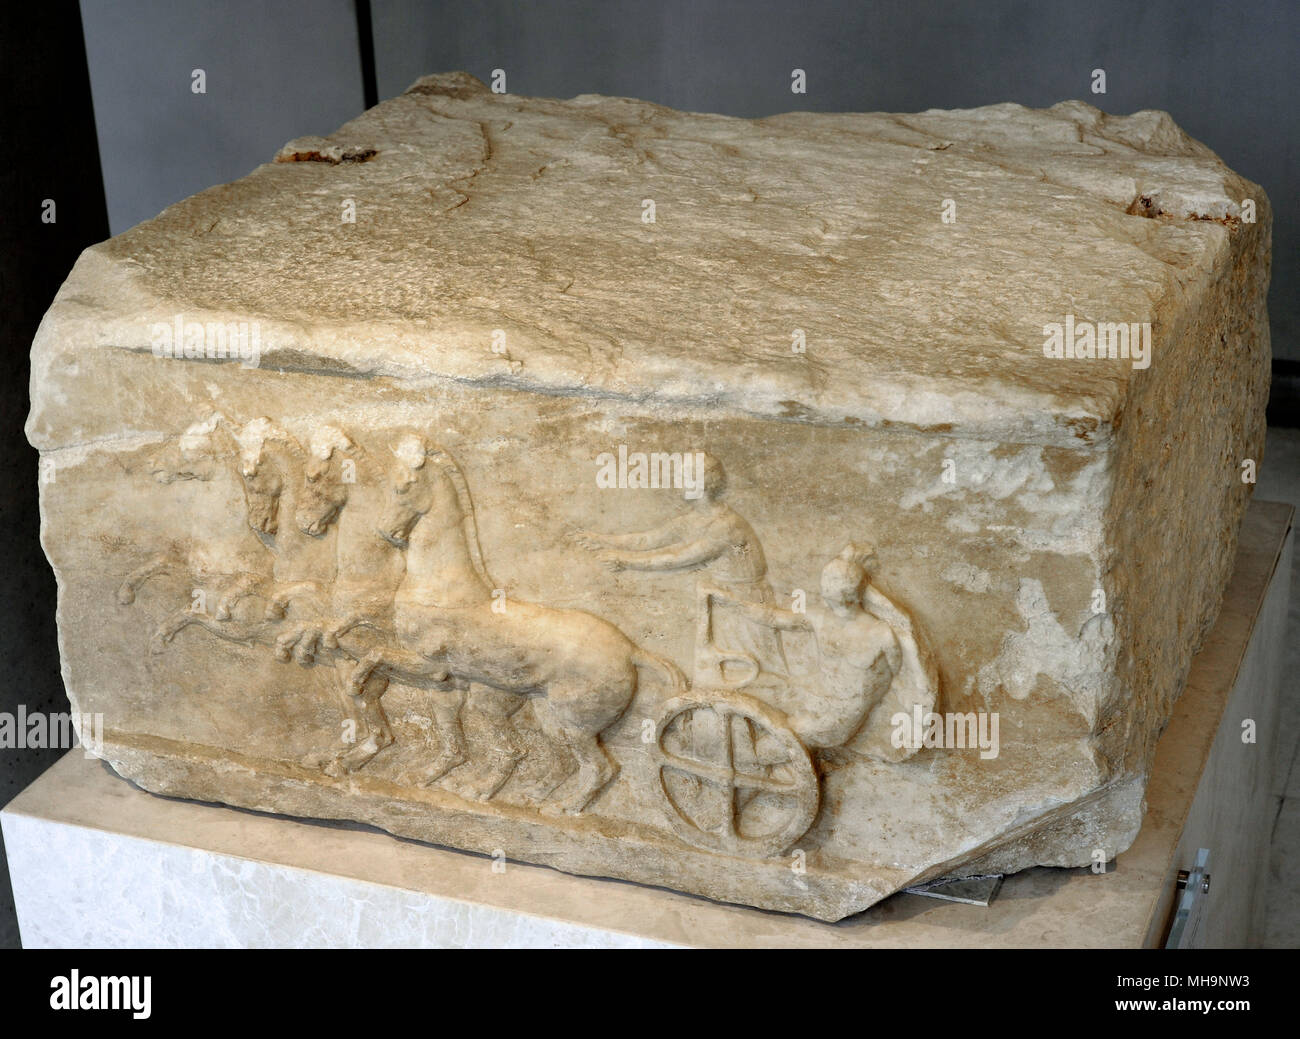 Base of a dedication. The relief depicts a scene from the apobates race. In the apobates race, the fully armed athlete jumped to the ground and then had to remount on the fast-moving chariot. Late 4th-Early 3rd century BC. Acropolis Museum. Athens. Greece. - Stock Image